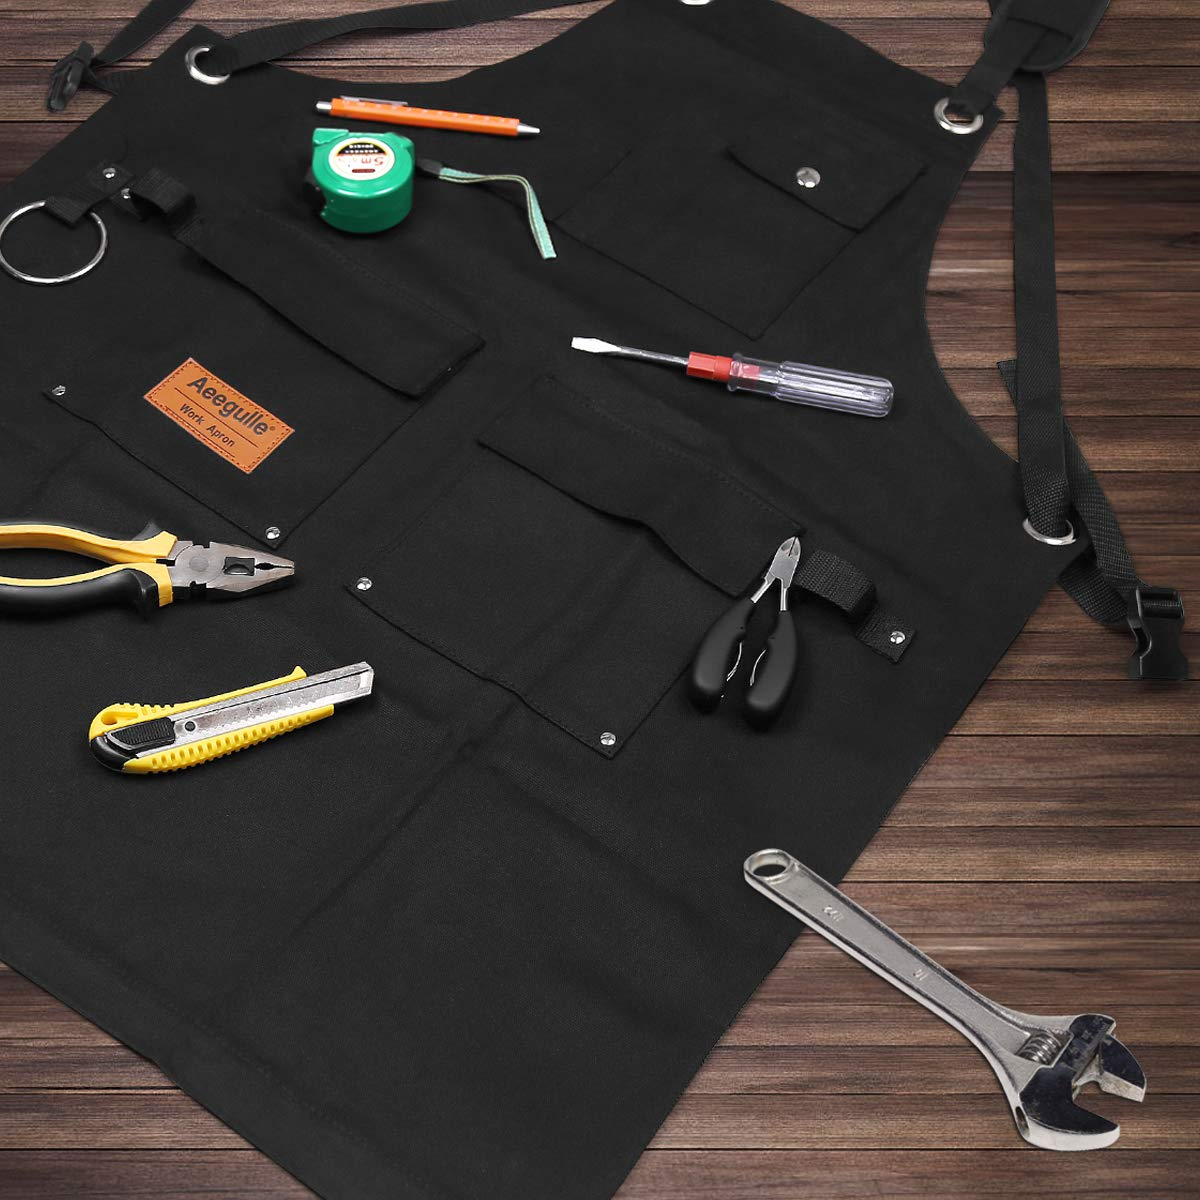 Aeegulle Work Apron, Heavy Duty Waxed Canvas Tool Apron (With work gloves), 6 Pockets, Thick shoulder pad, Quick Release Buckle, Cross-Back Straps Adjustable M to XXL, Apron for Men & Women(black) by Aeegulle (Image #6)